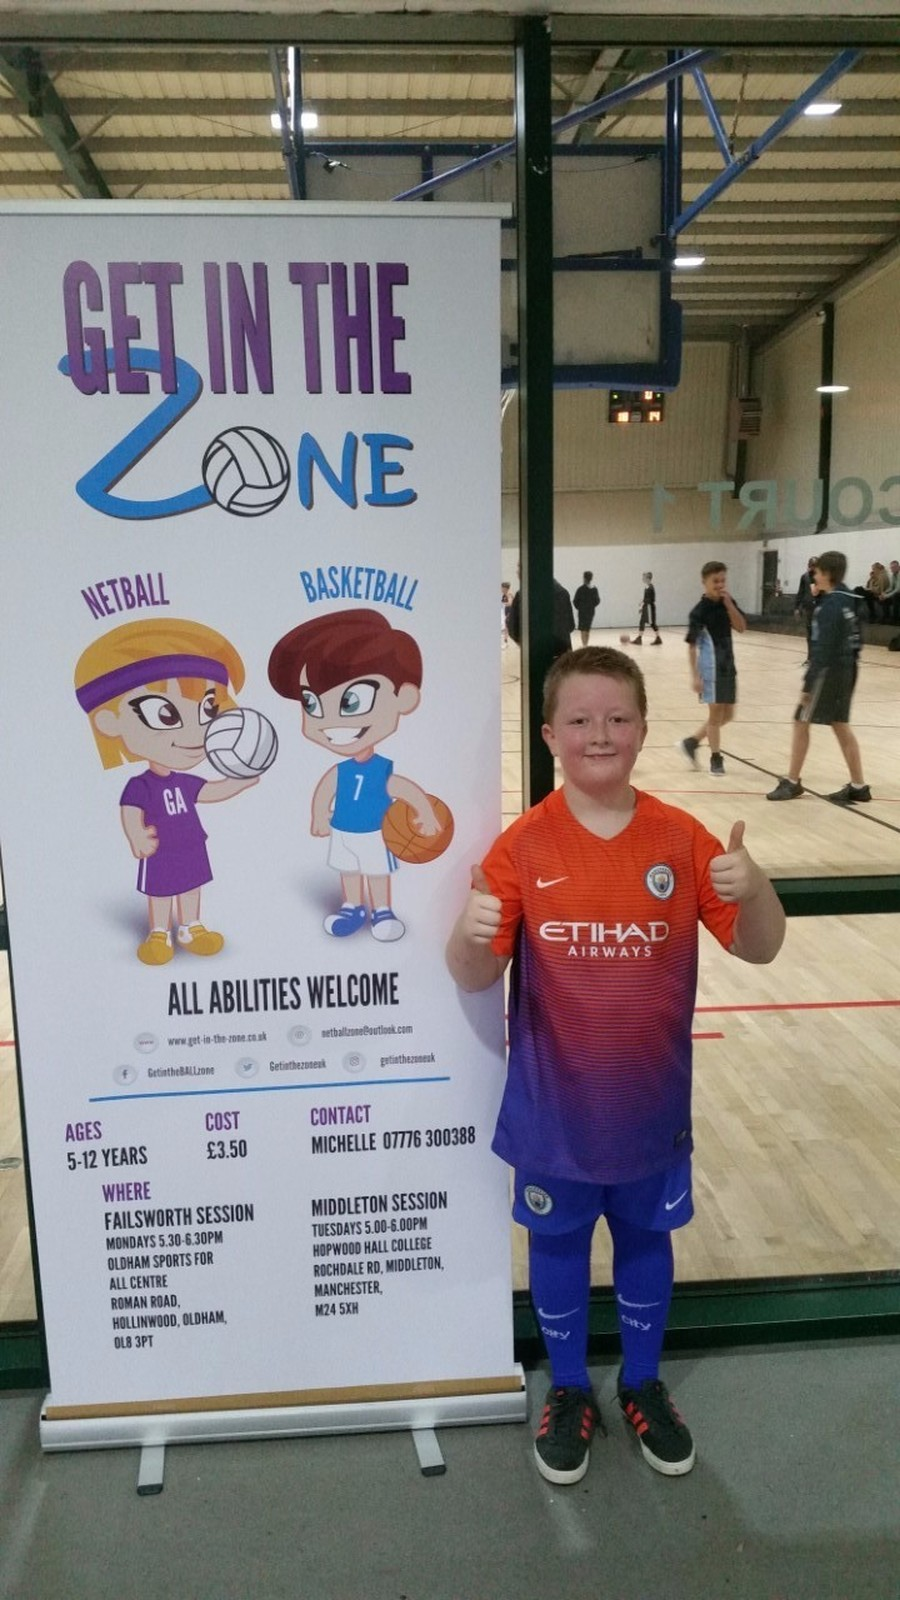 Bradley has been training with get in the zone. He played his first game of basketball today. The team did great and they won 18-14. Fantastic news keep it up.